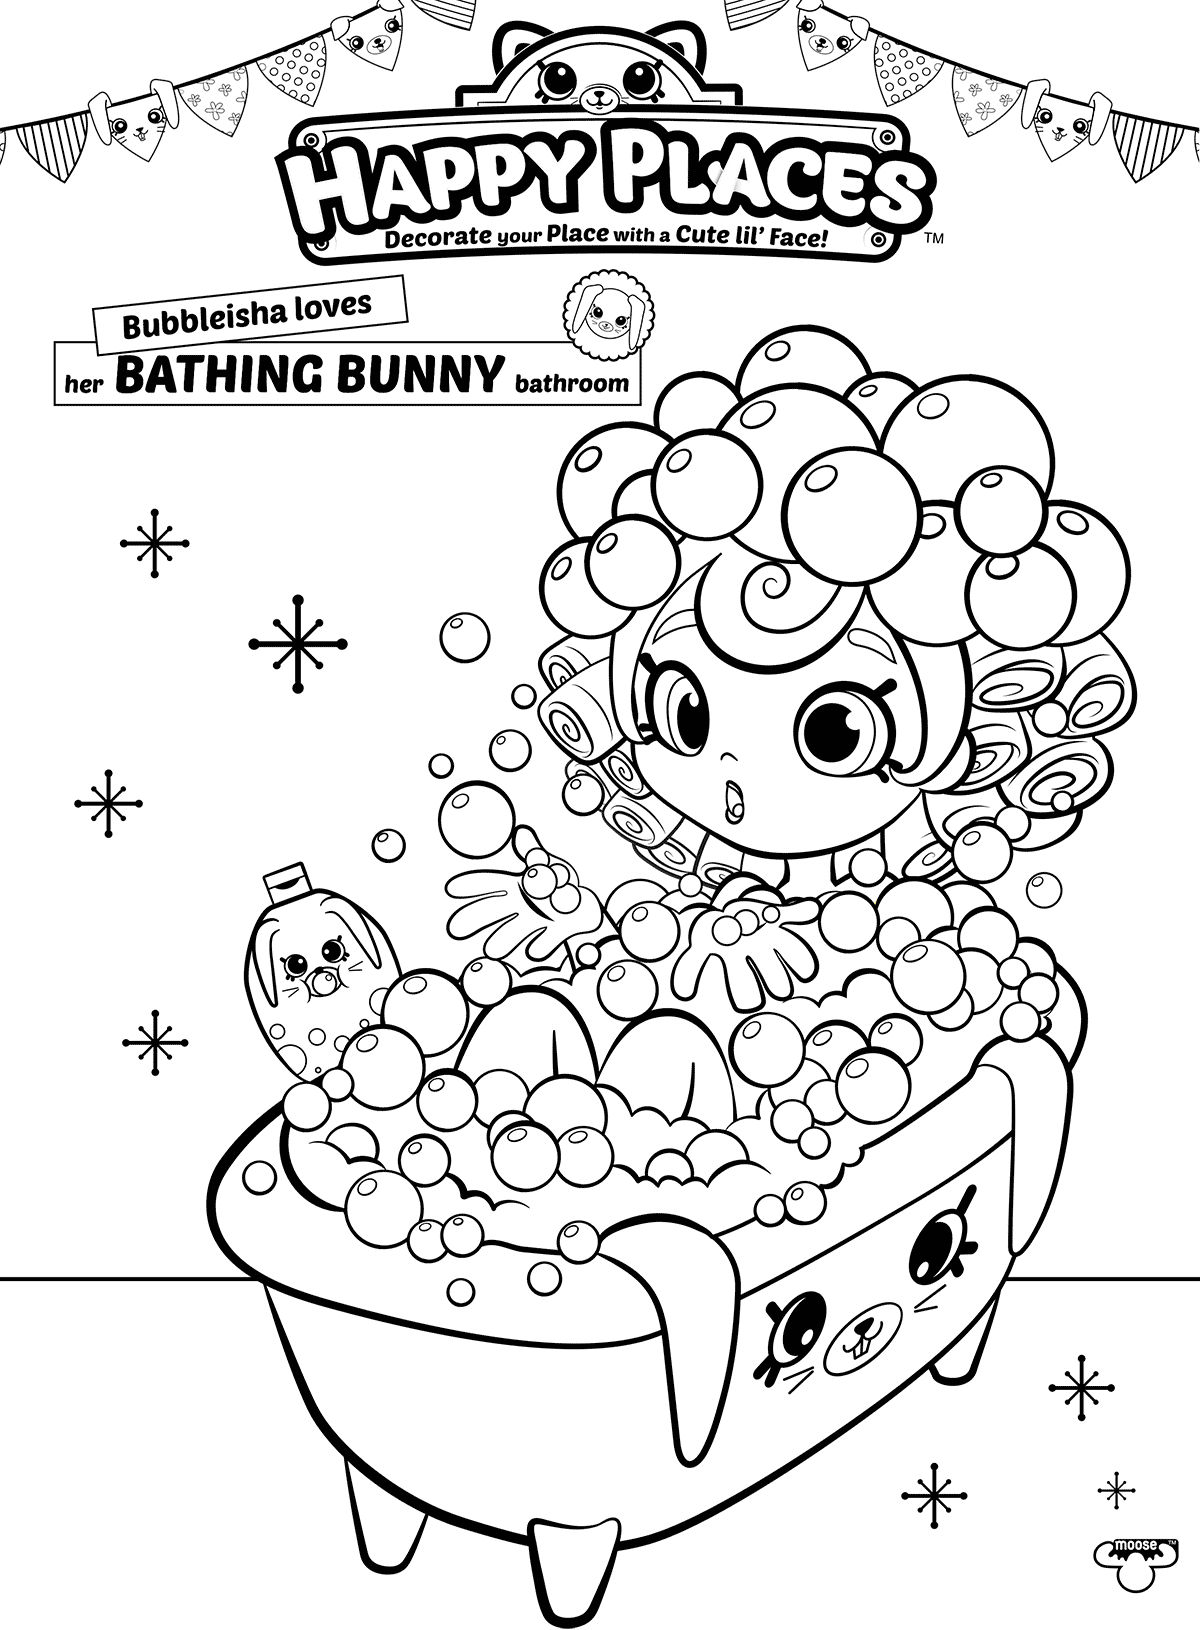 Bubbleisha is a Bathing Bunny - Shoppies Coloring Pages